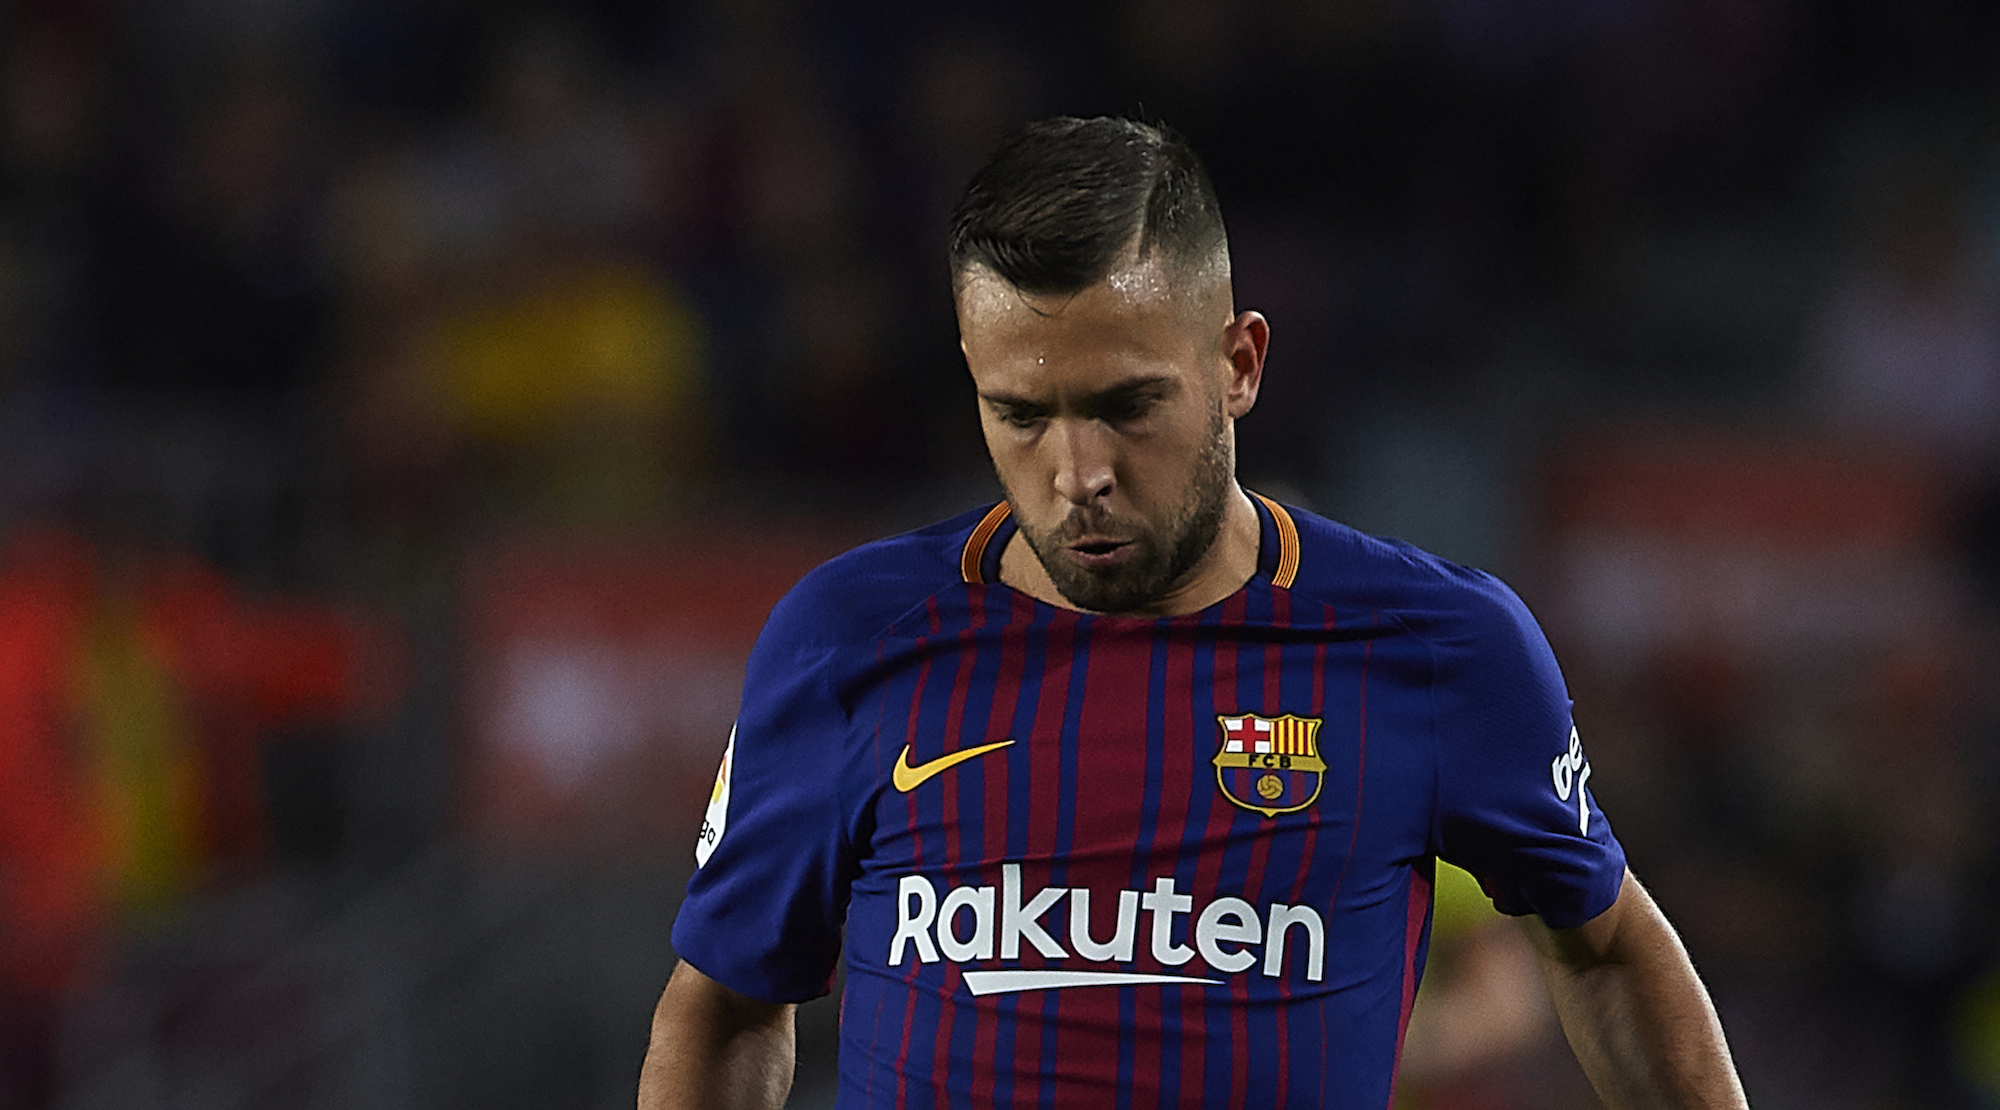 BARCELONA, SPAIN - SEPTEMBER 09: Jordi Alba of Barcelona in action during the La Liga match between Barcelona and Espanyol at Camp Nou on September 9, 2017 in Barcelona, Spain. (Photo by Manuel Queimadelos Alonso/Getty Images)